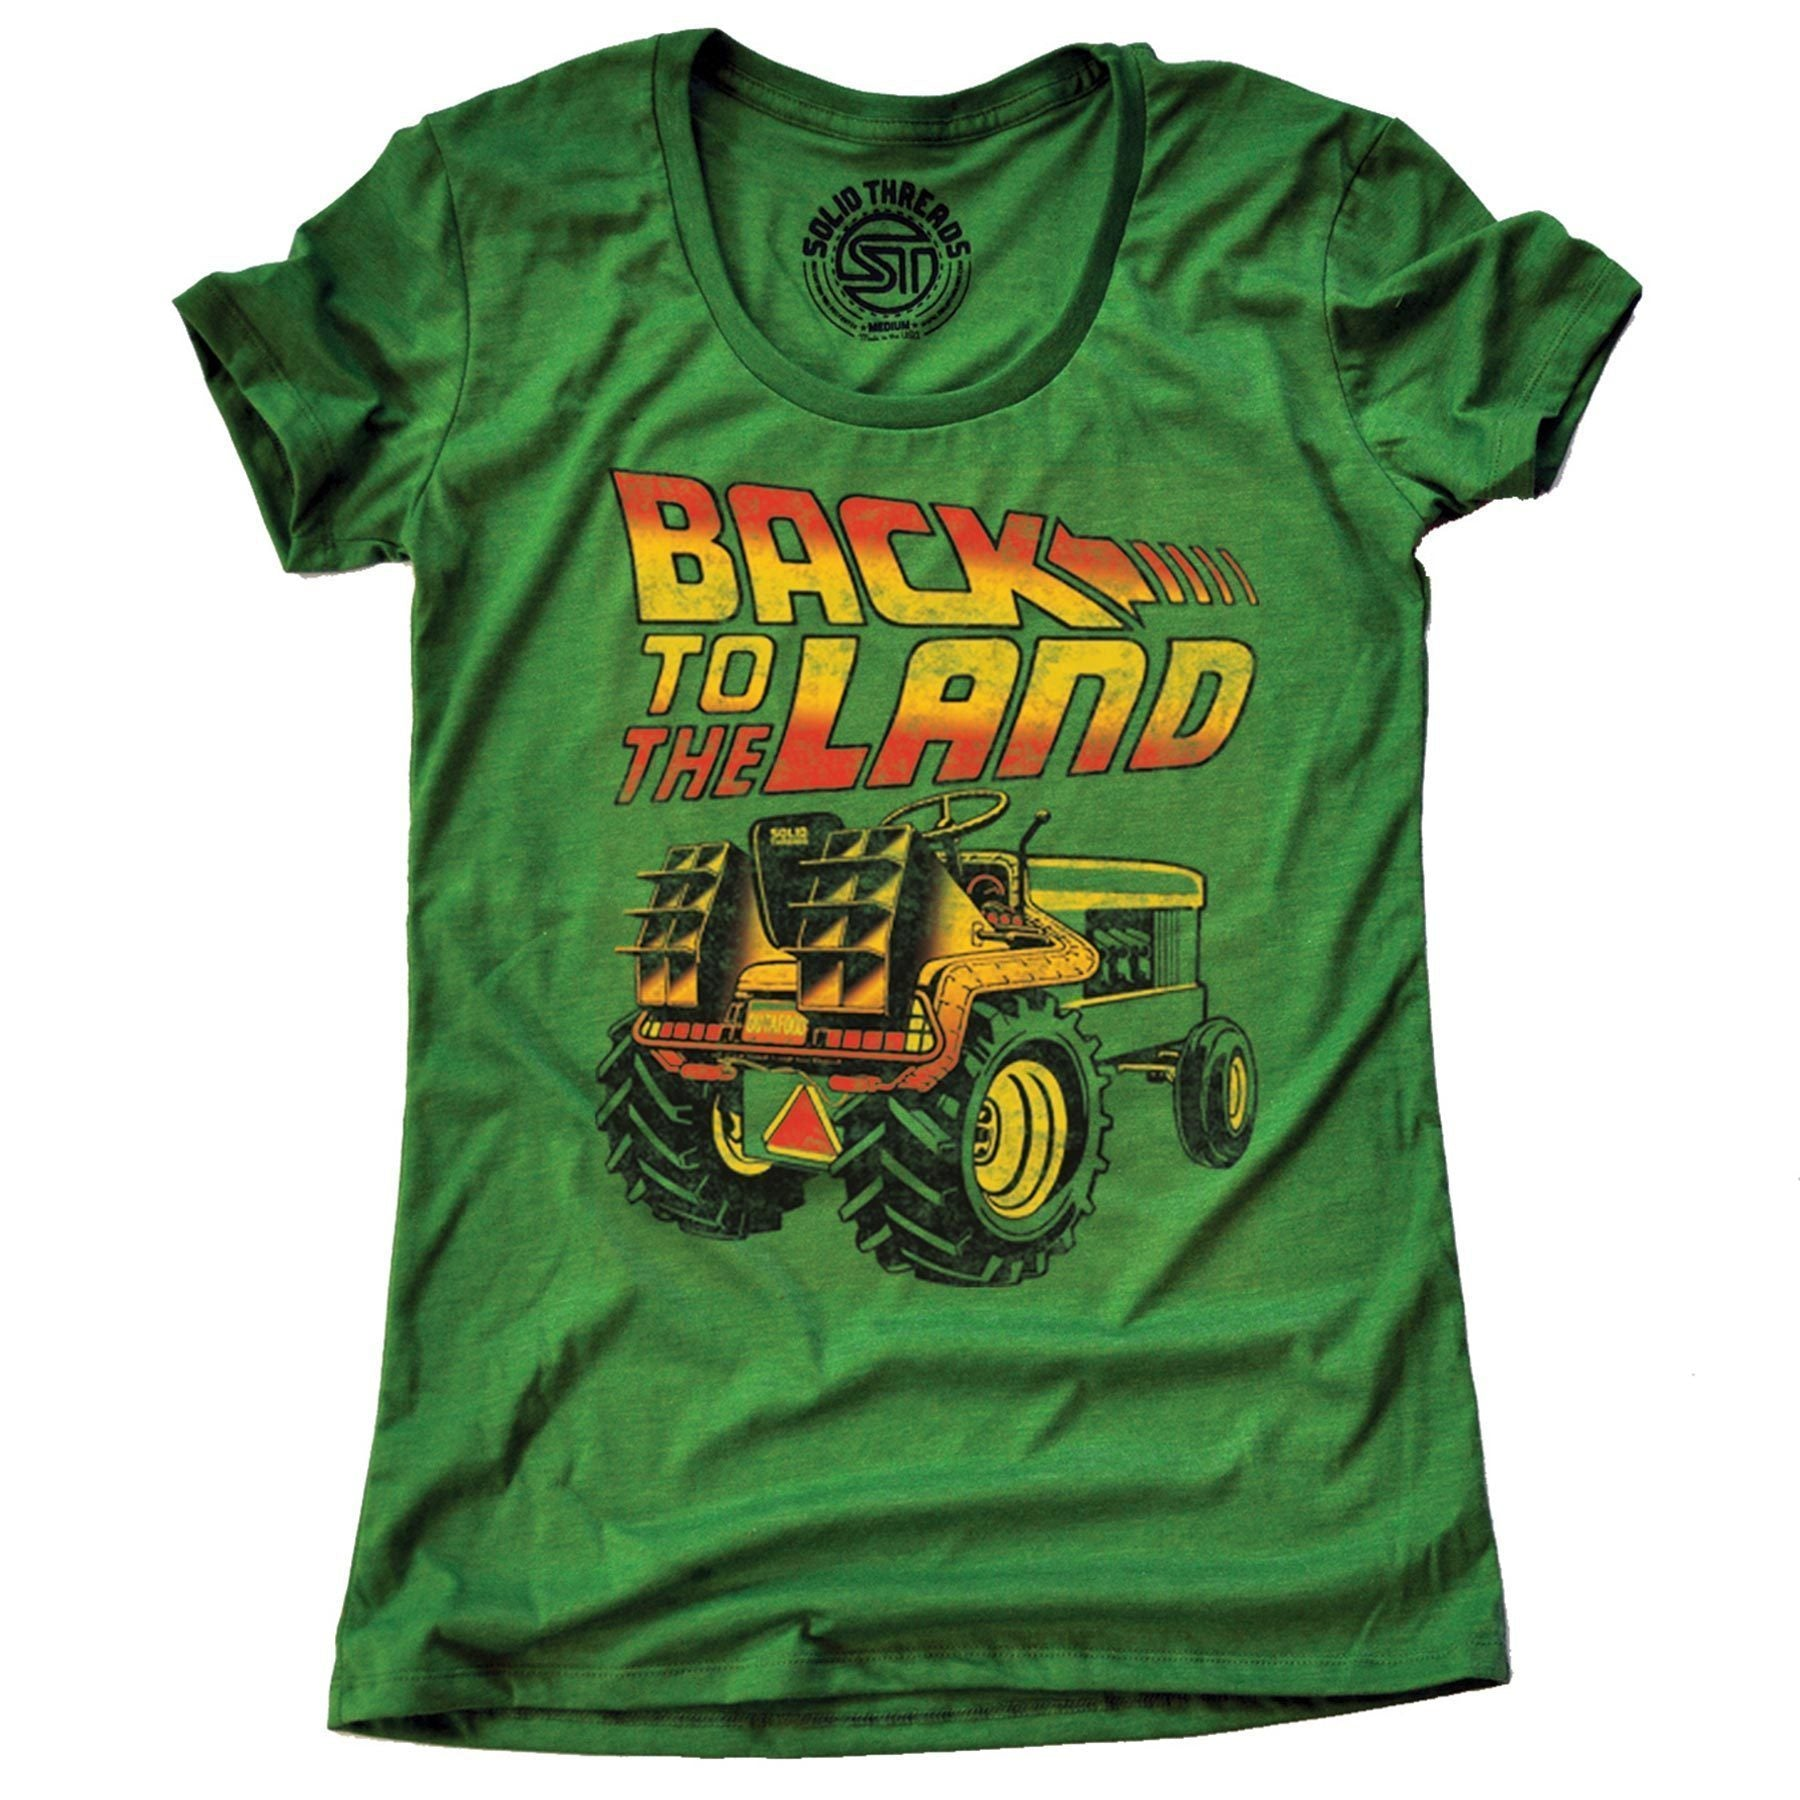 Women's Back To The Land Vintage Inspired T-shirt | SOLID THREADS